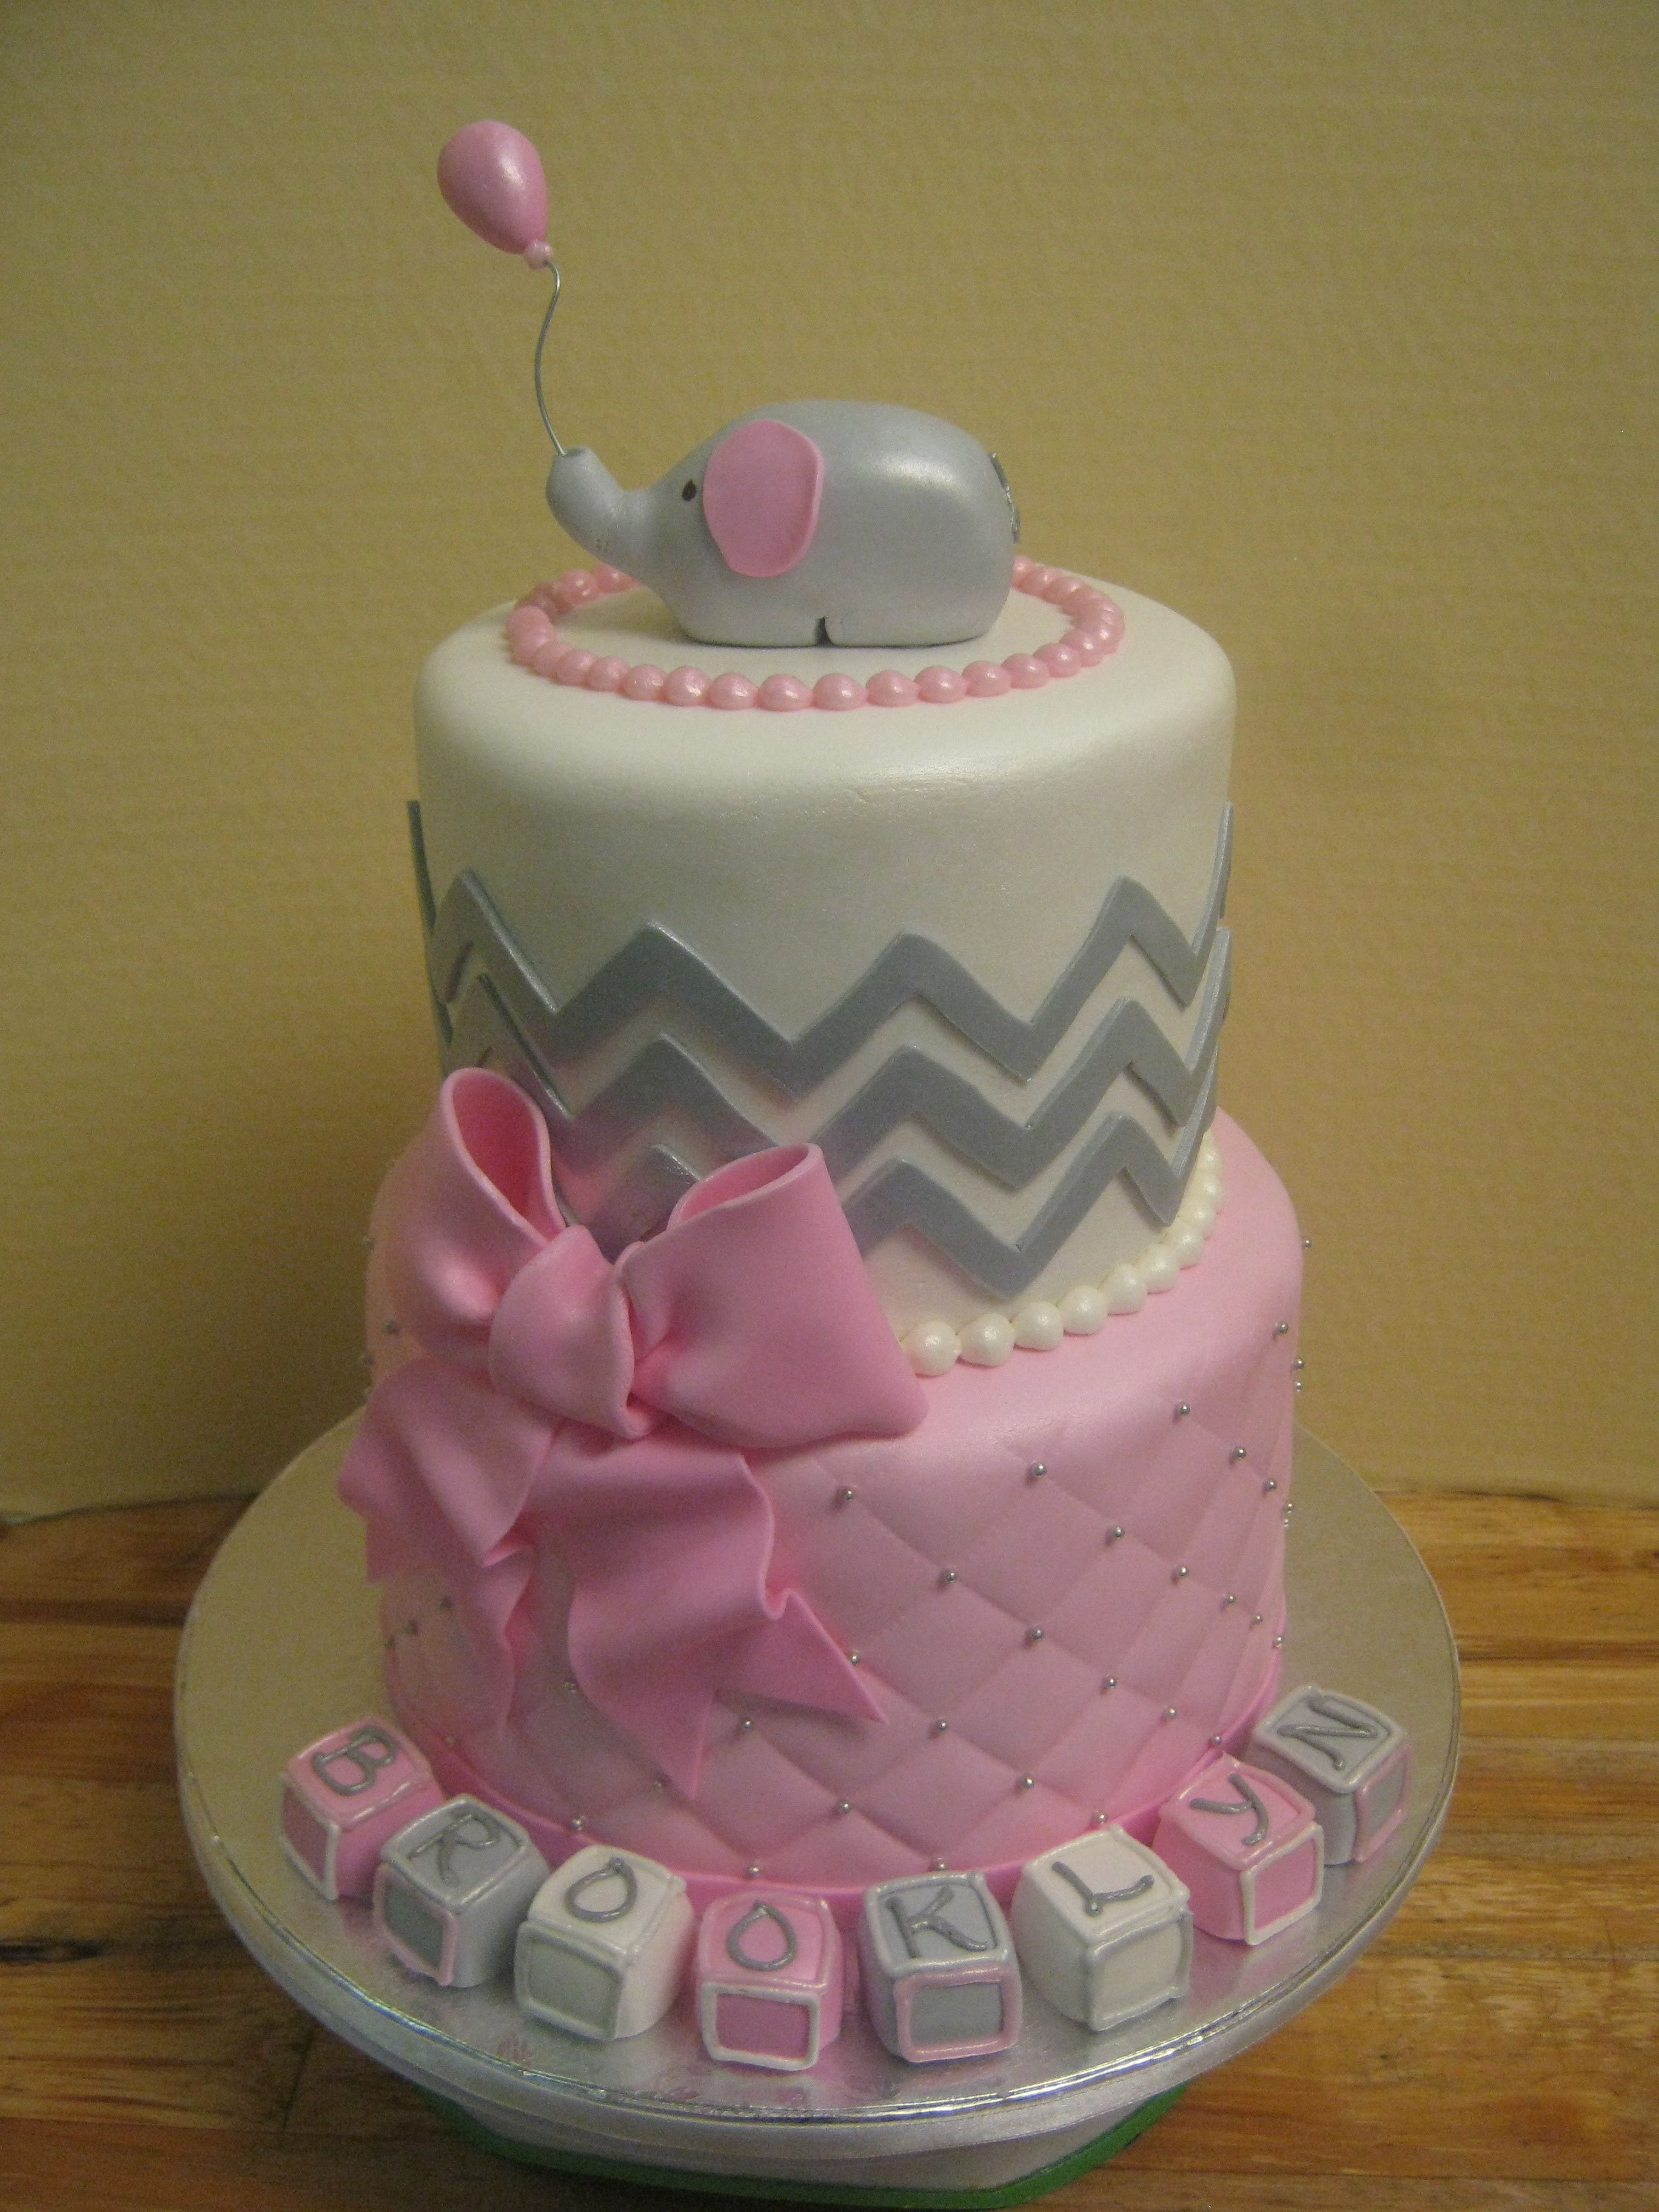 Chevron little elephant tiered baby shower cake in pink and gray